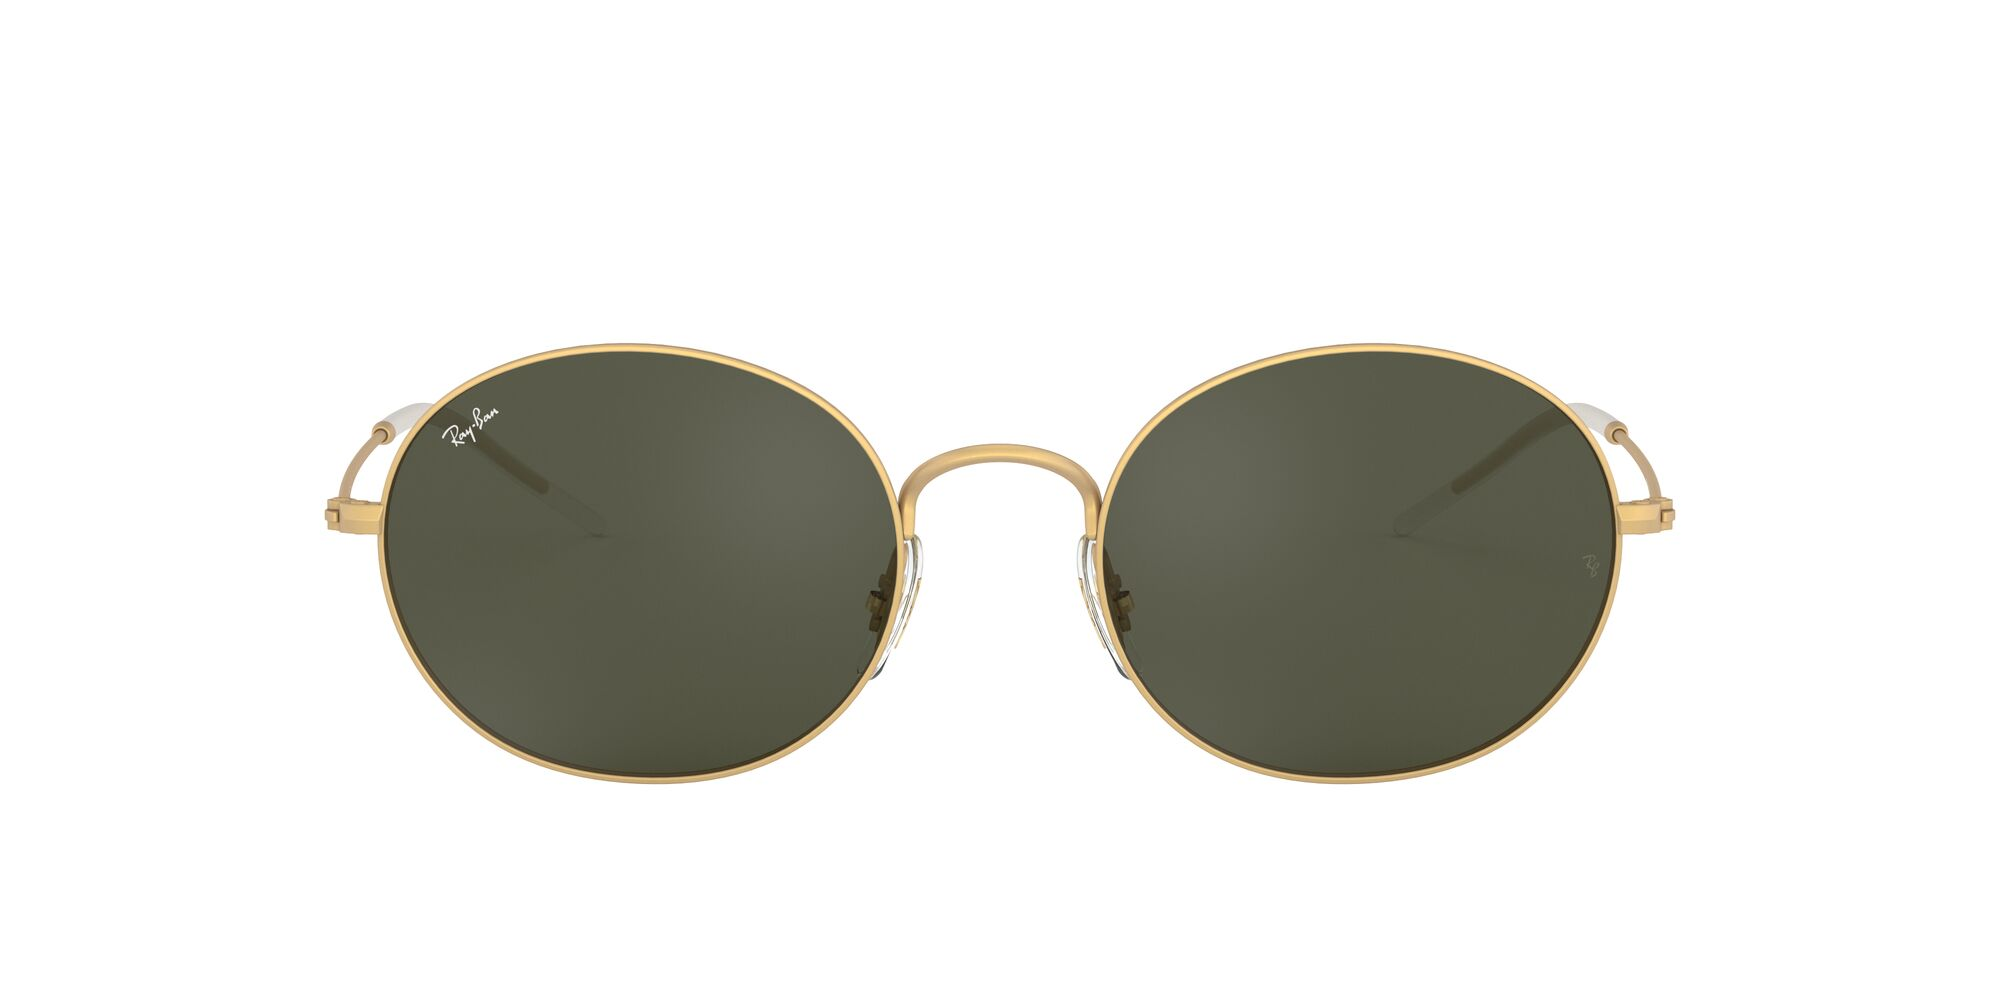 Front Ray-Ban Ray-Ban 0RB3594 901371 53/20 Goud/Groen